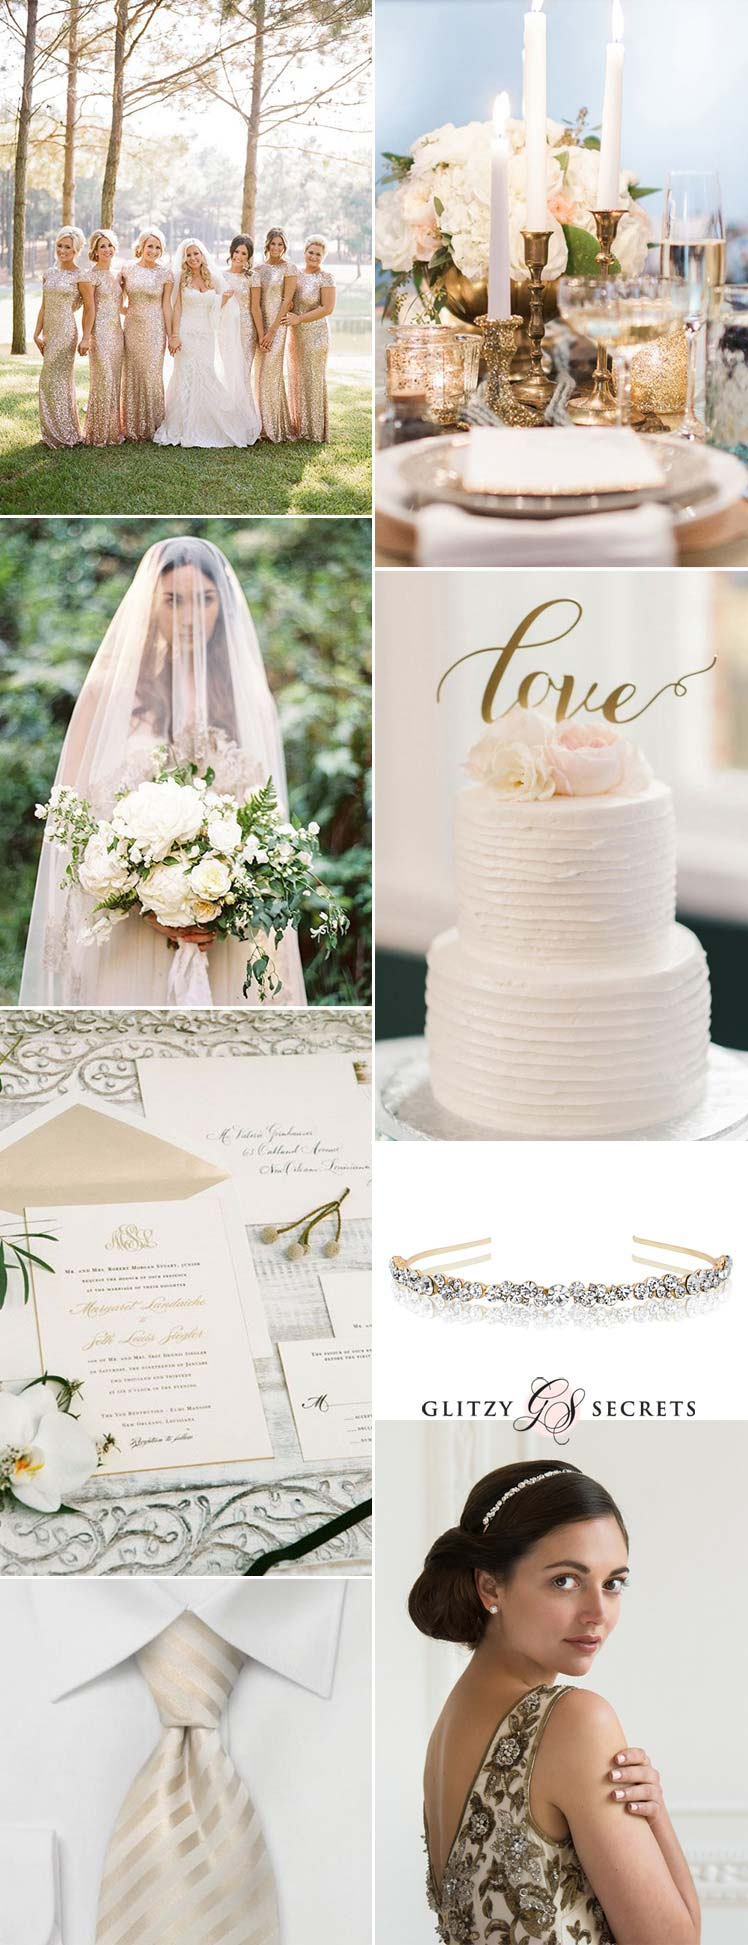 Cream and gold wedding inspiration ideas